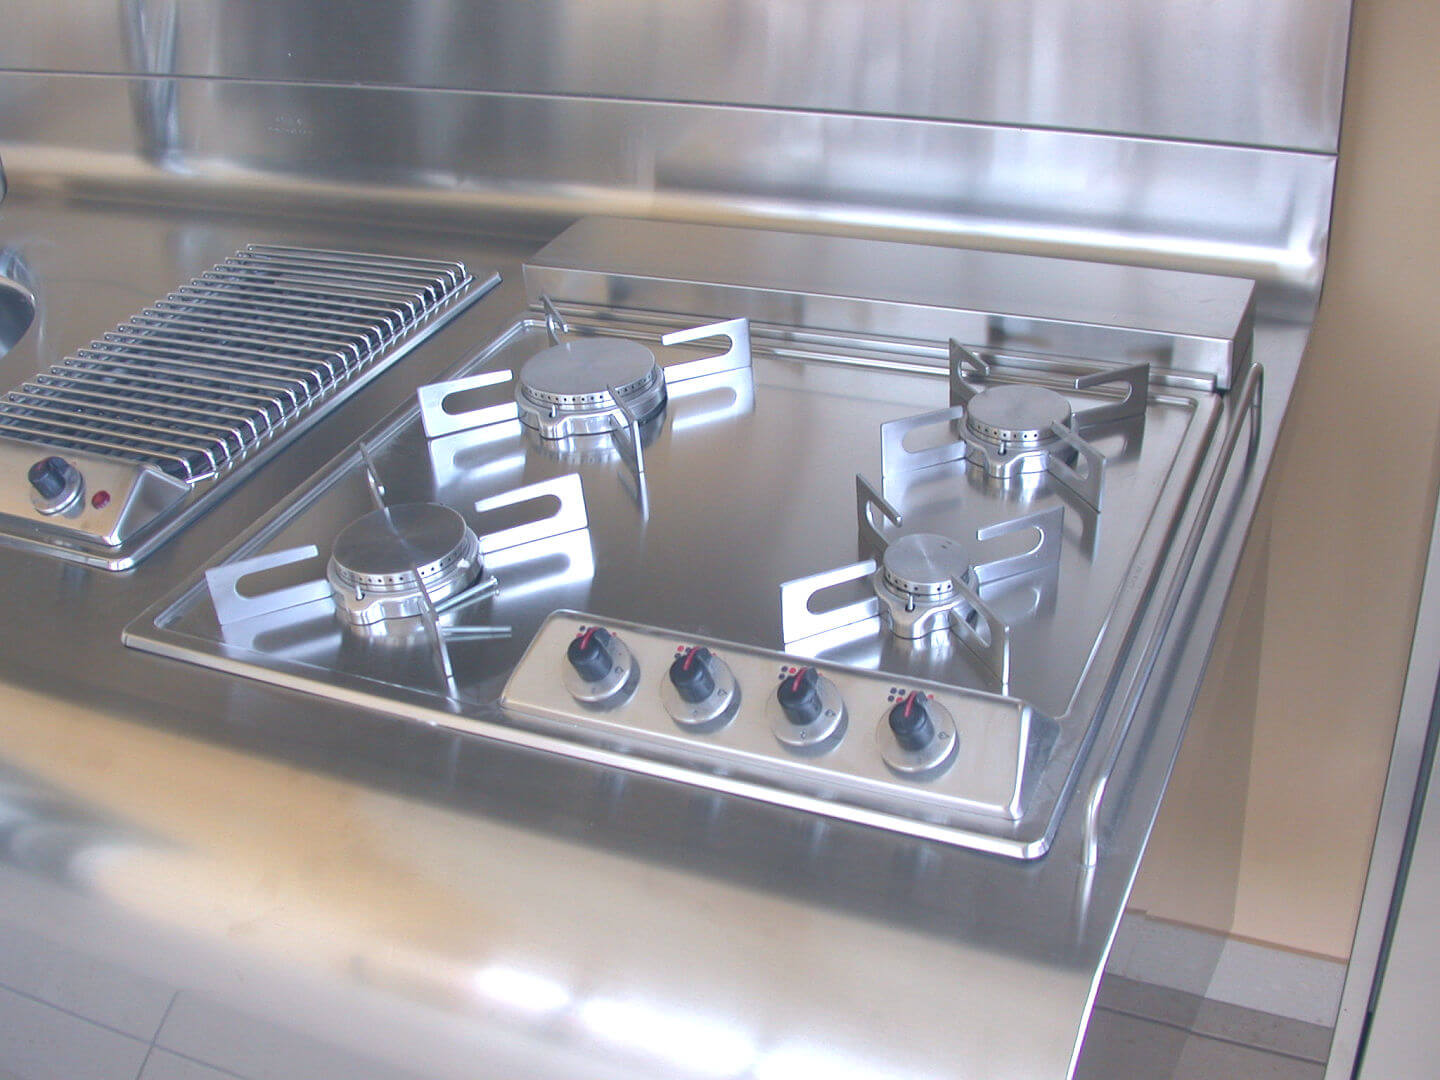 Arca Cucine Italy - Domestic stainless steel kitchens - Yacth - Dscn3588